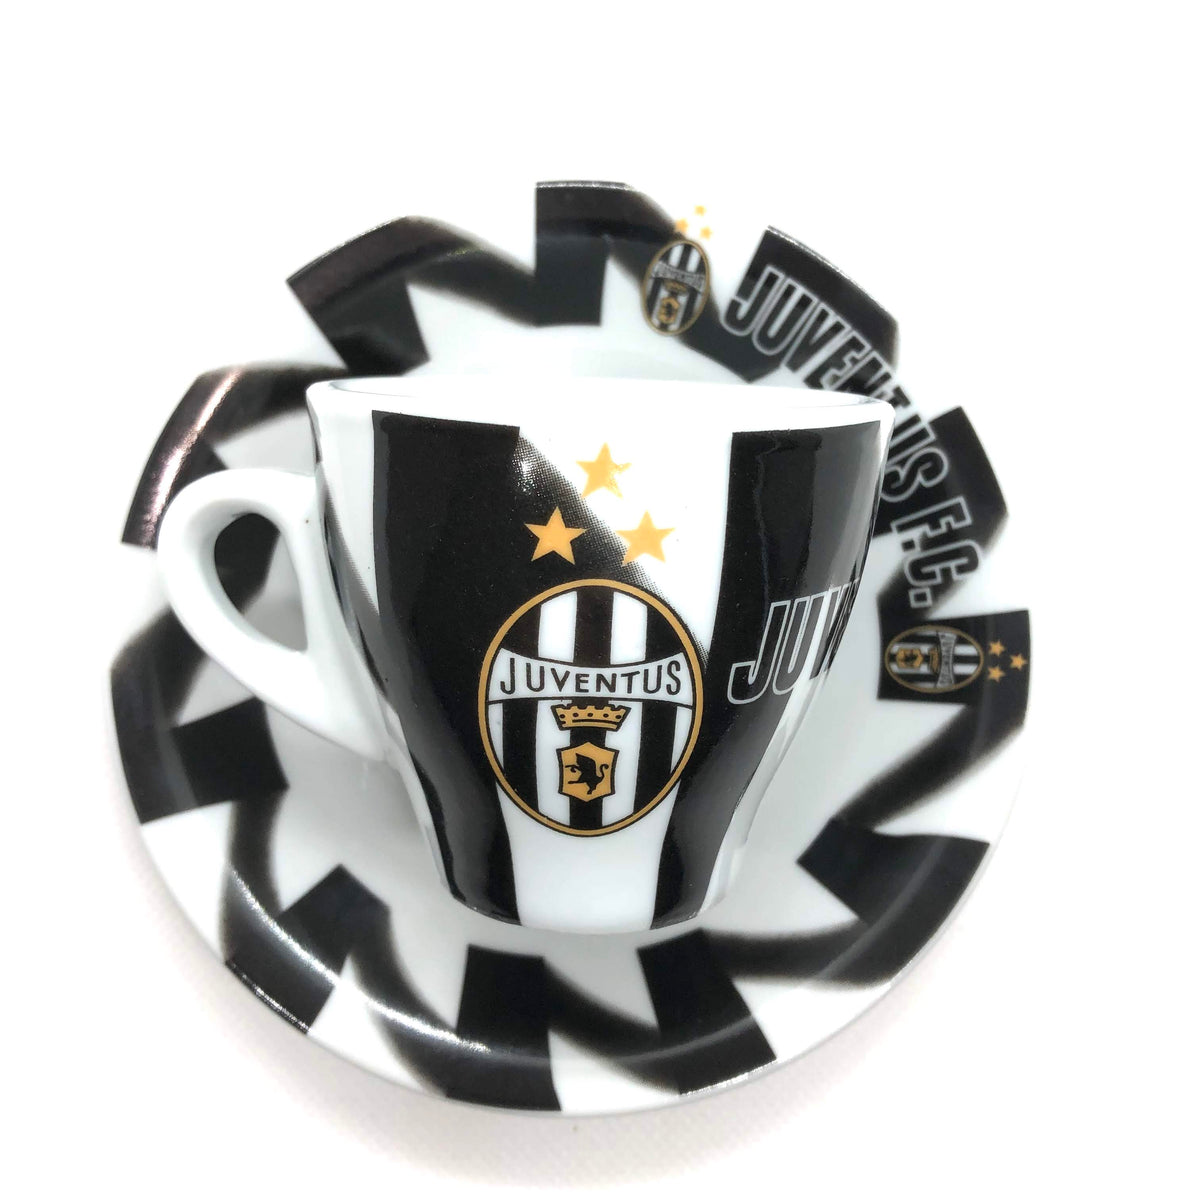 Serie A Italian Soccer Inter Espresso Cup and Saucer Front View